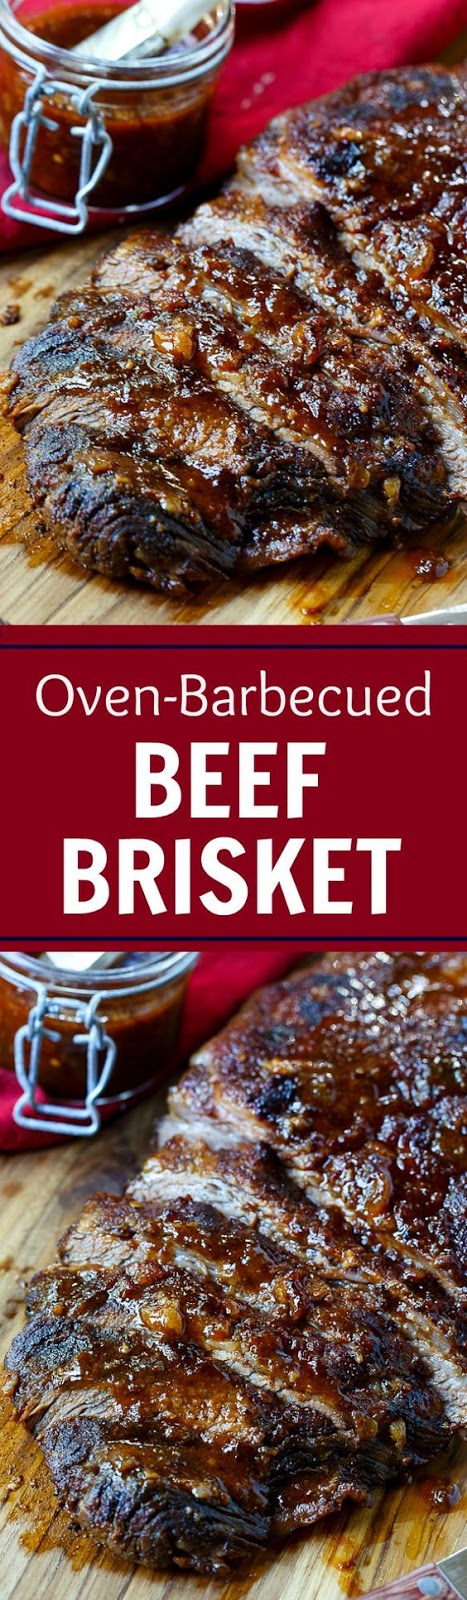 This is a recipe from Cook's Illustrated and it makes THE most flavorful brisket.  It is one of the most scrumptious pieces of meat I have ever tasted and I think it has the potential to create quite a few brisket lovers.